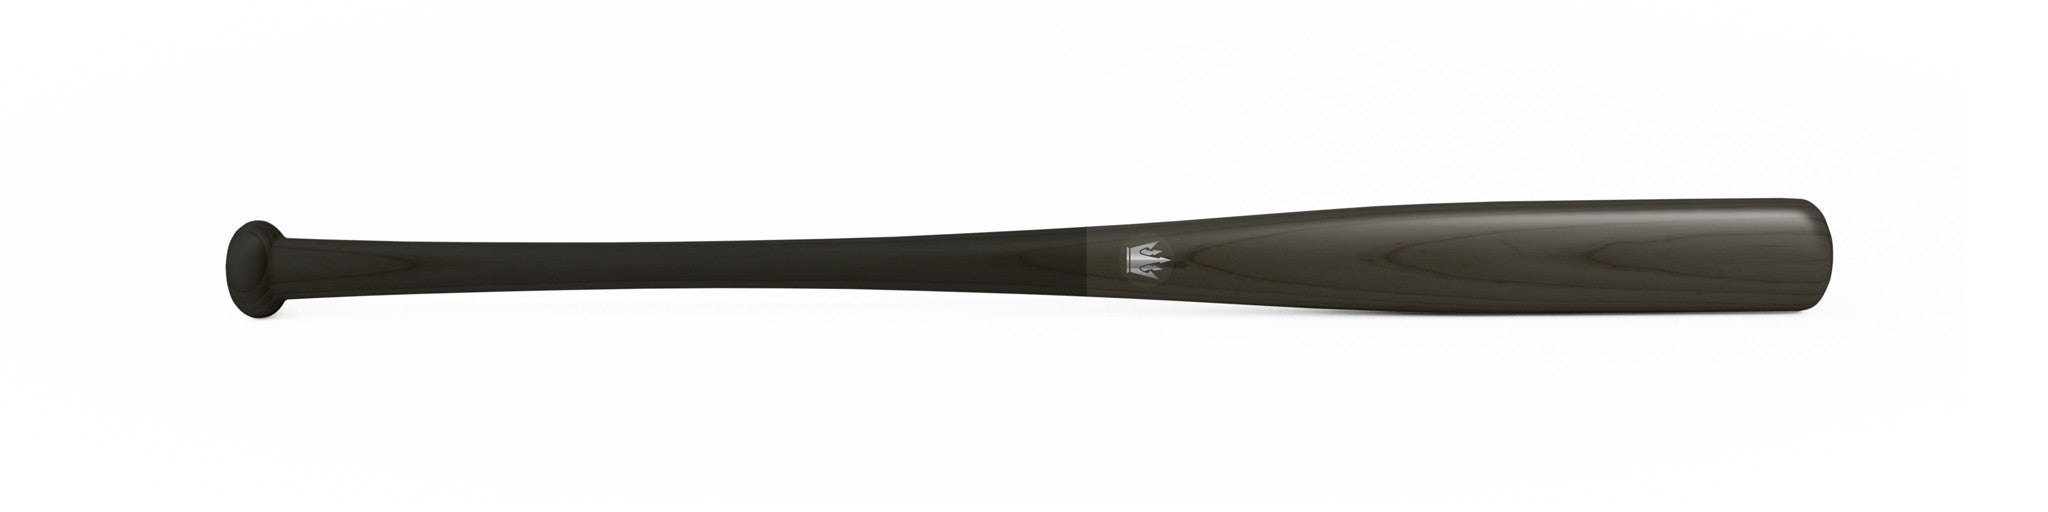 Wood bat - Ash model L10 Black Charcoal - 25